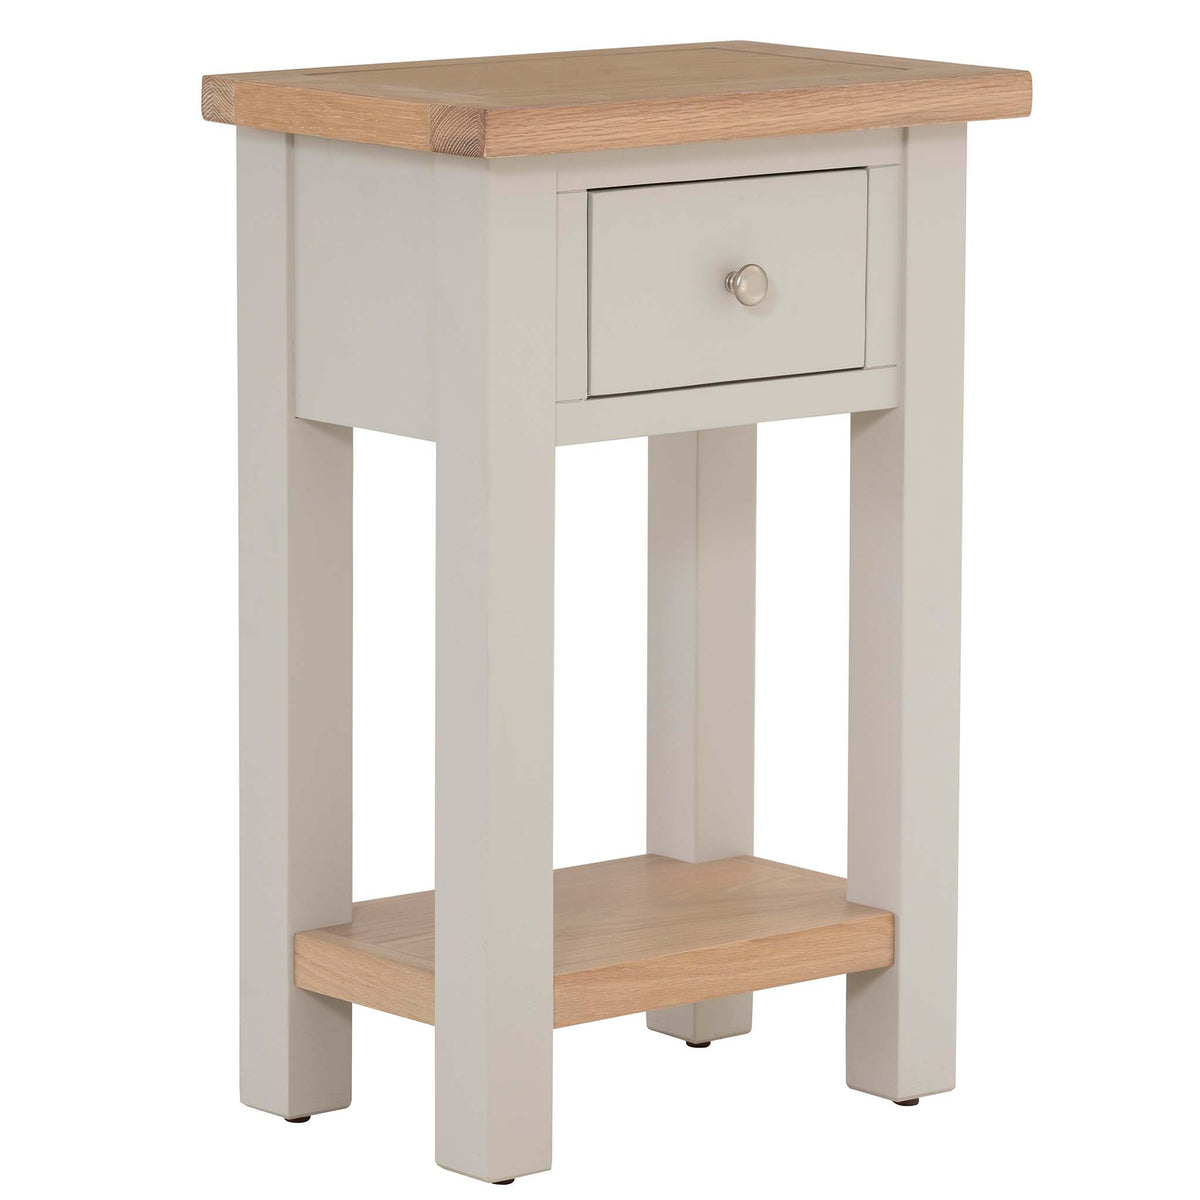 Charlestown Grey Telephone Table with Oak Top from Roseland Furniture